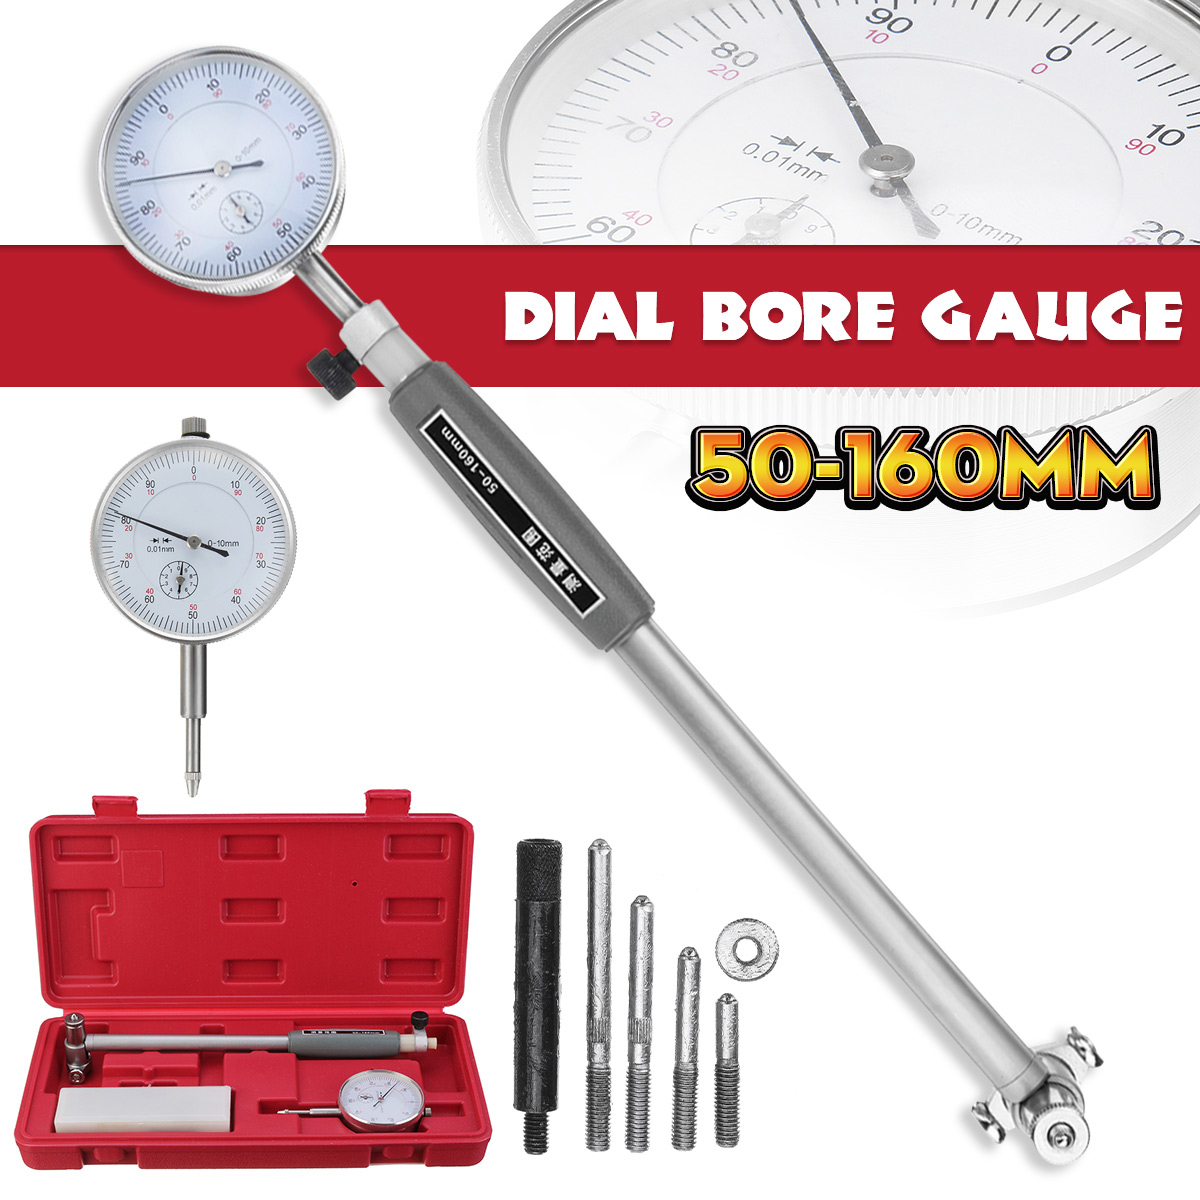 50-160mm/0.01mm Metric Dial Bore Gauge Cylinder Internal Small Inside Measuring Gage Test